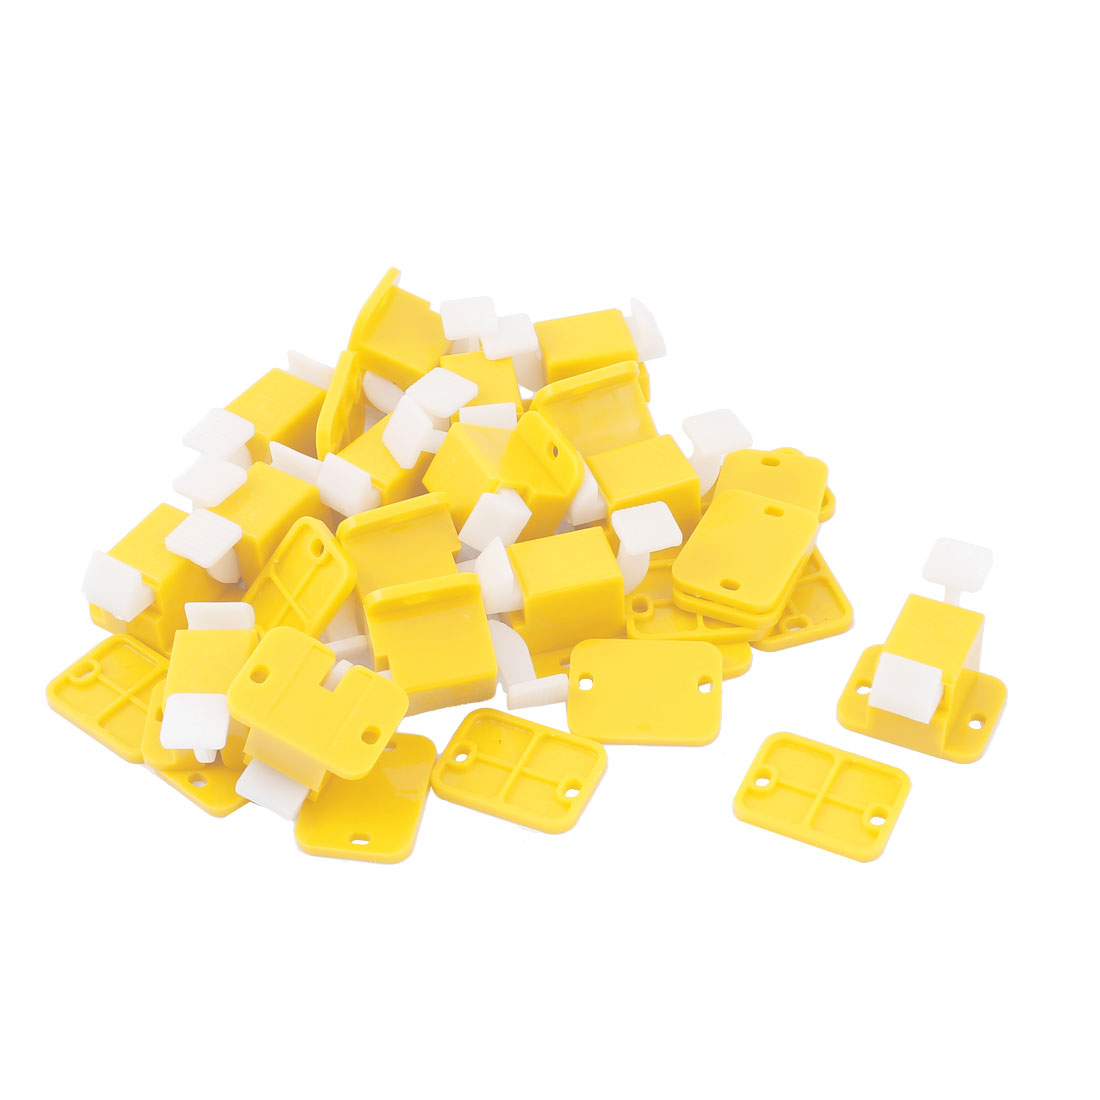 PCB ICT Prototype Test Fixture Jig Edge Latches Yellow White 16pcs